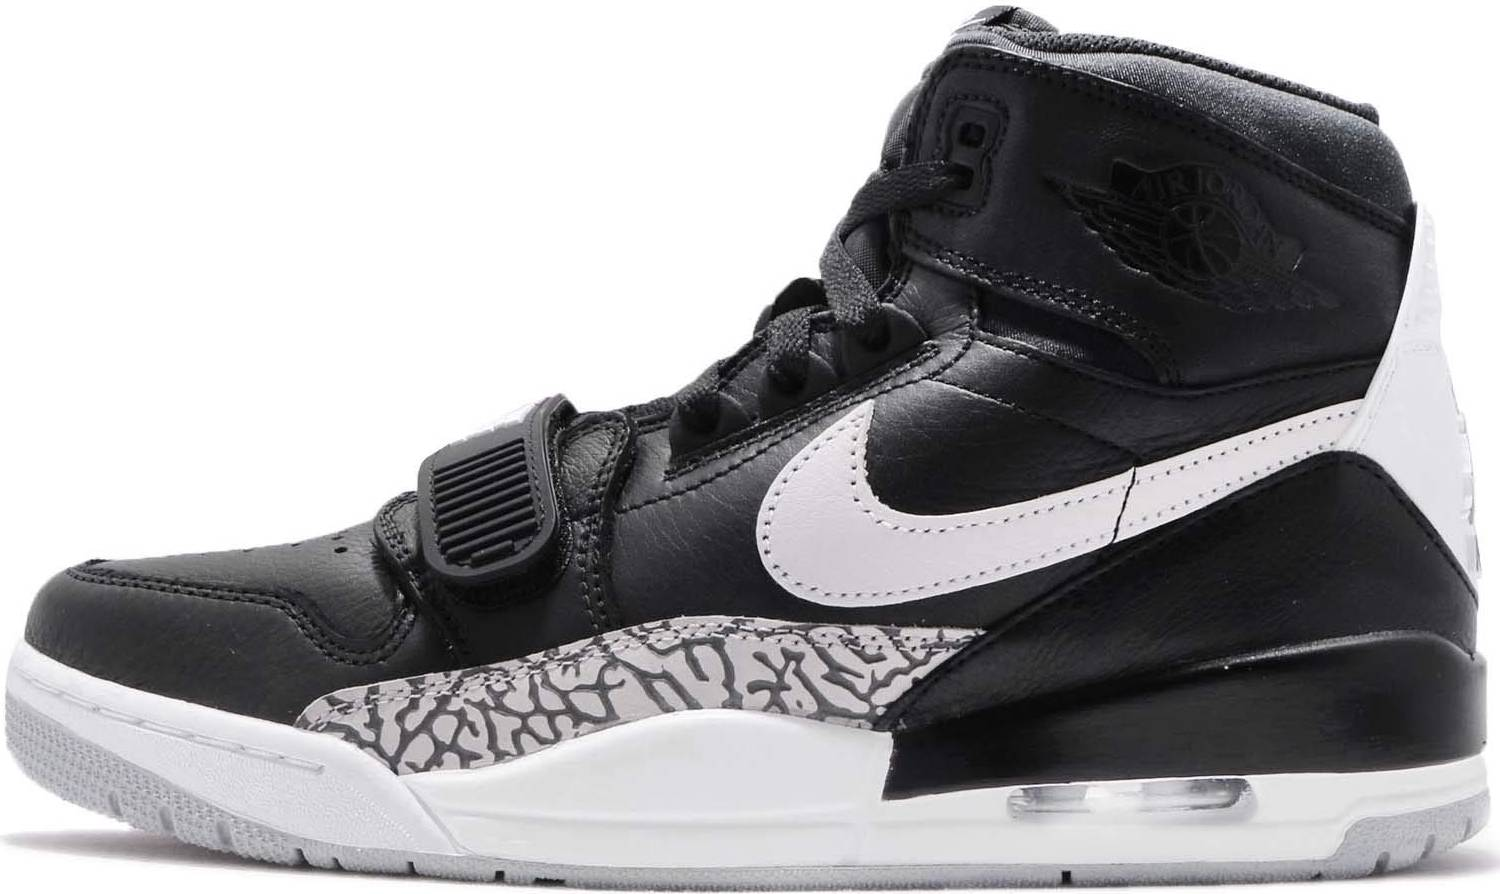 black and white jordans with straps